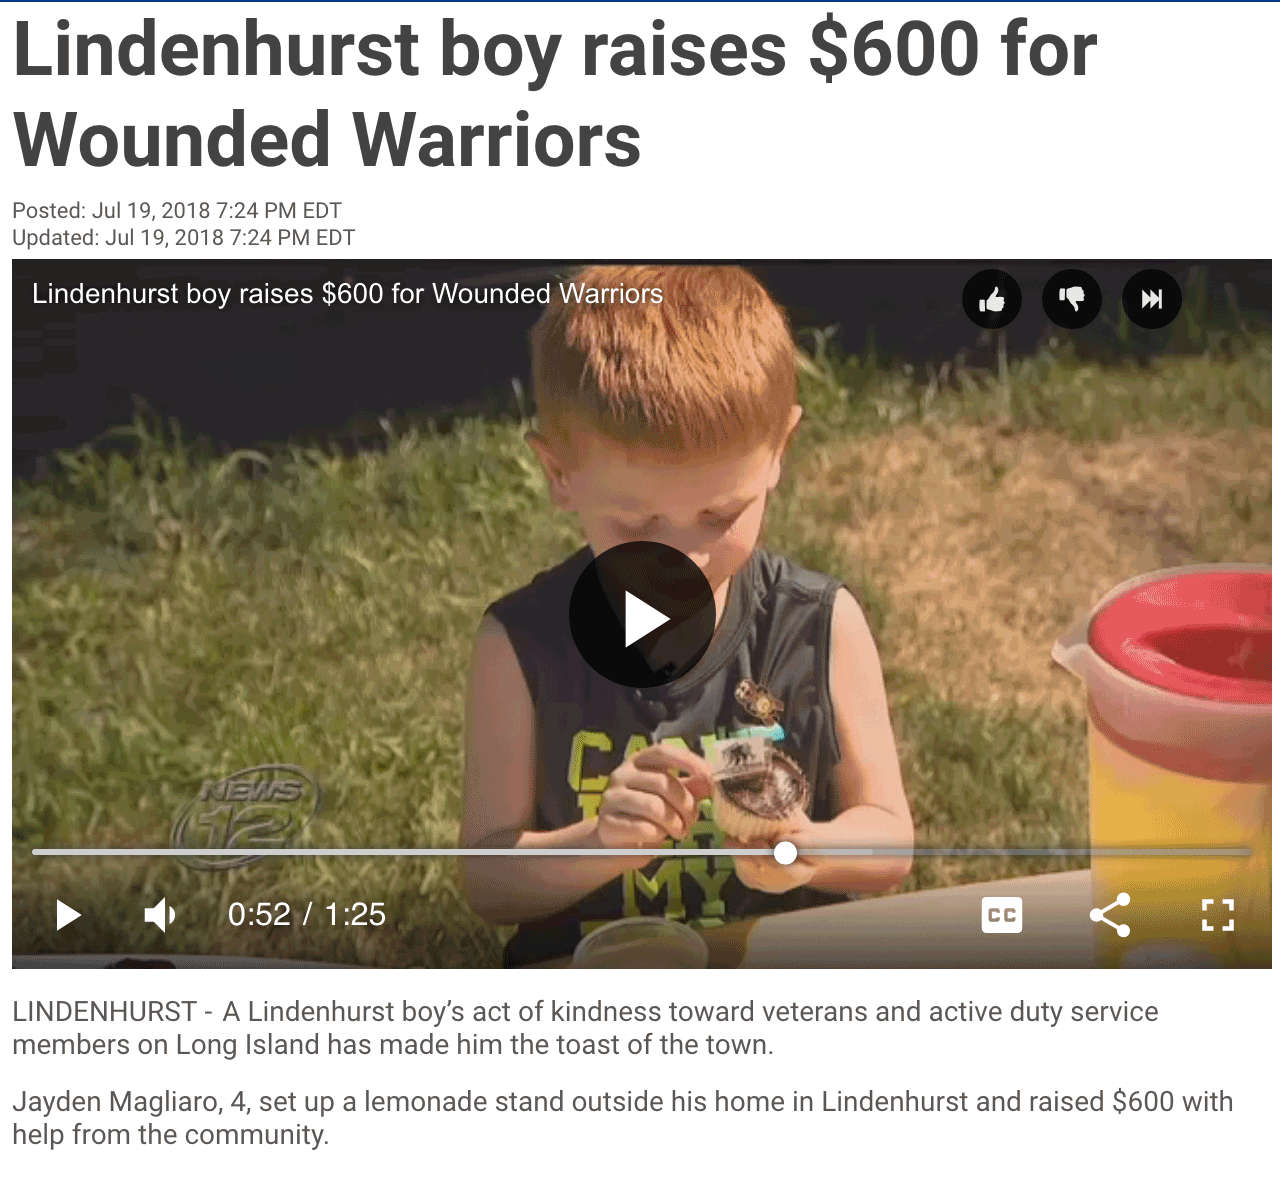 Four Year Old Sells Lemonade to Benefit Wounded Warriors